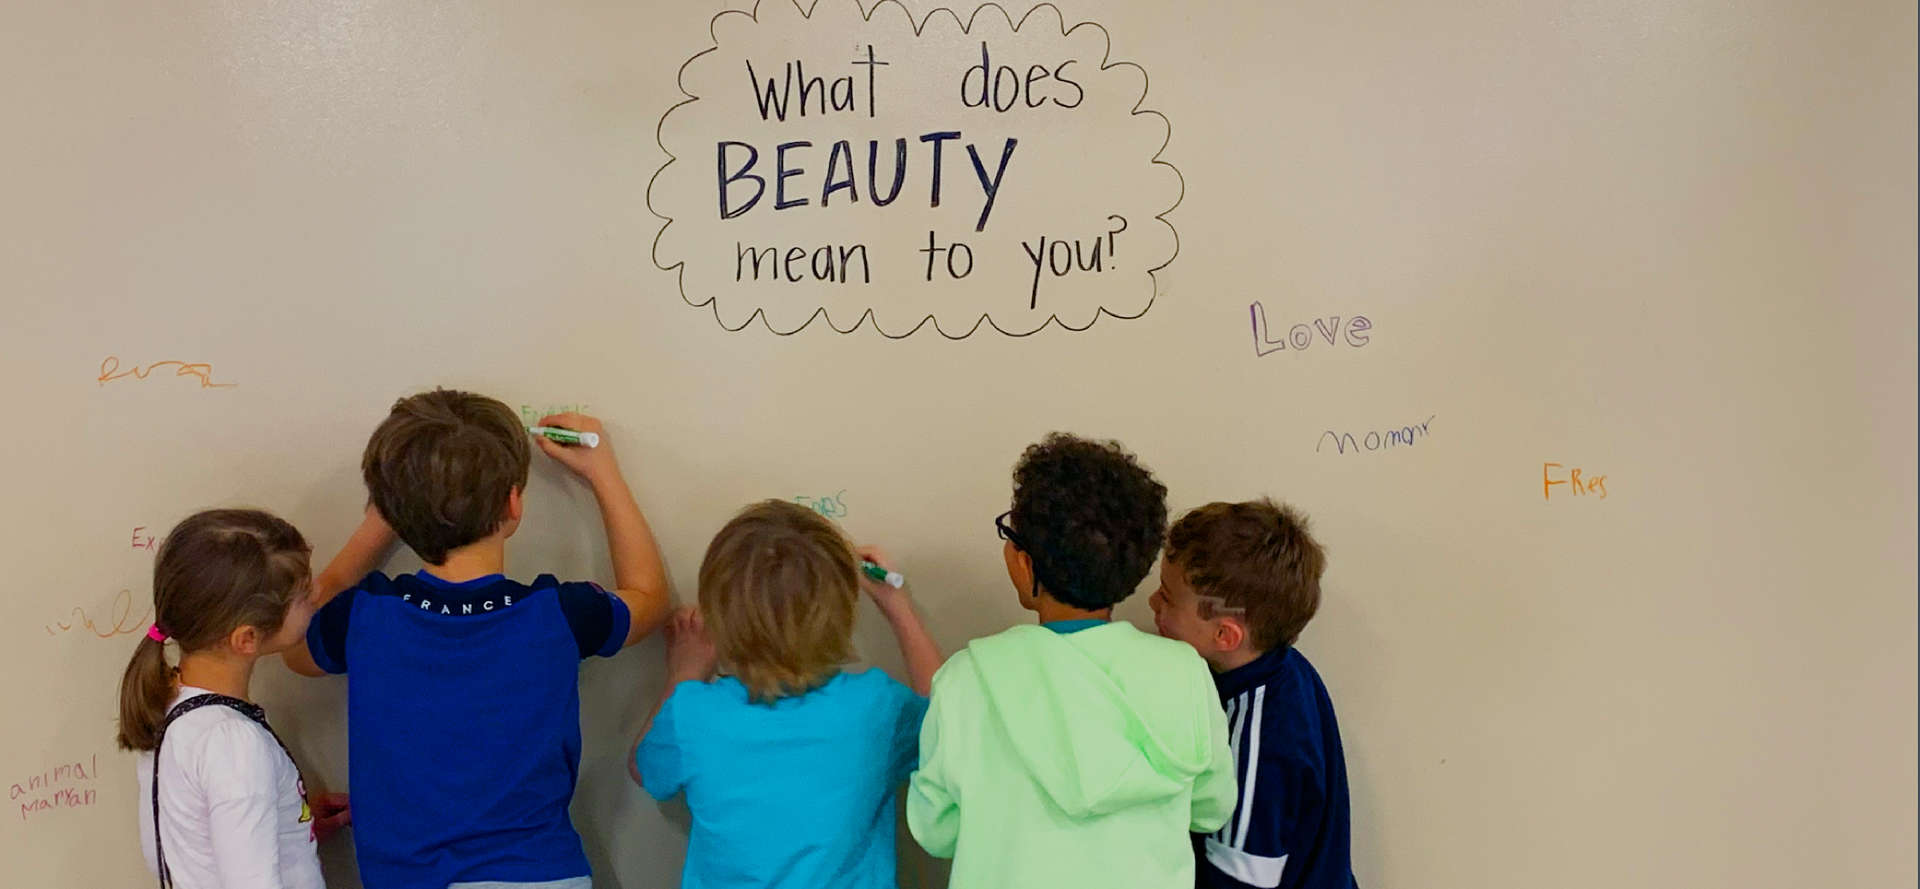 Students brainstorm ideas on a large white board